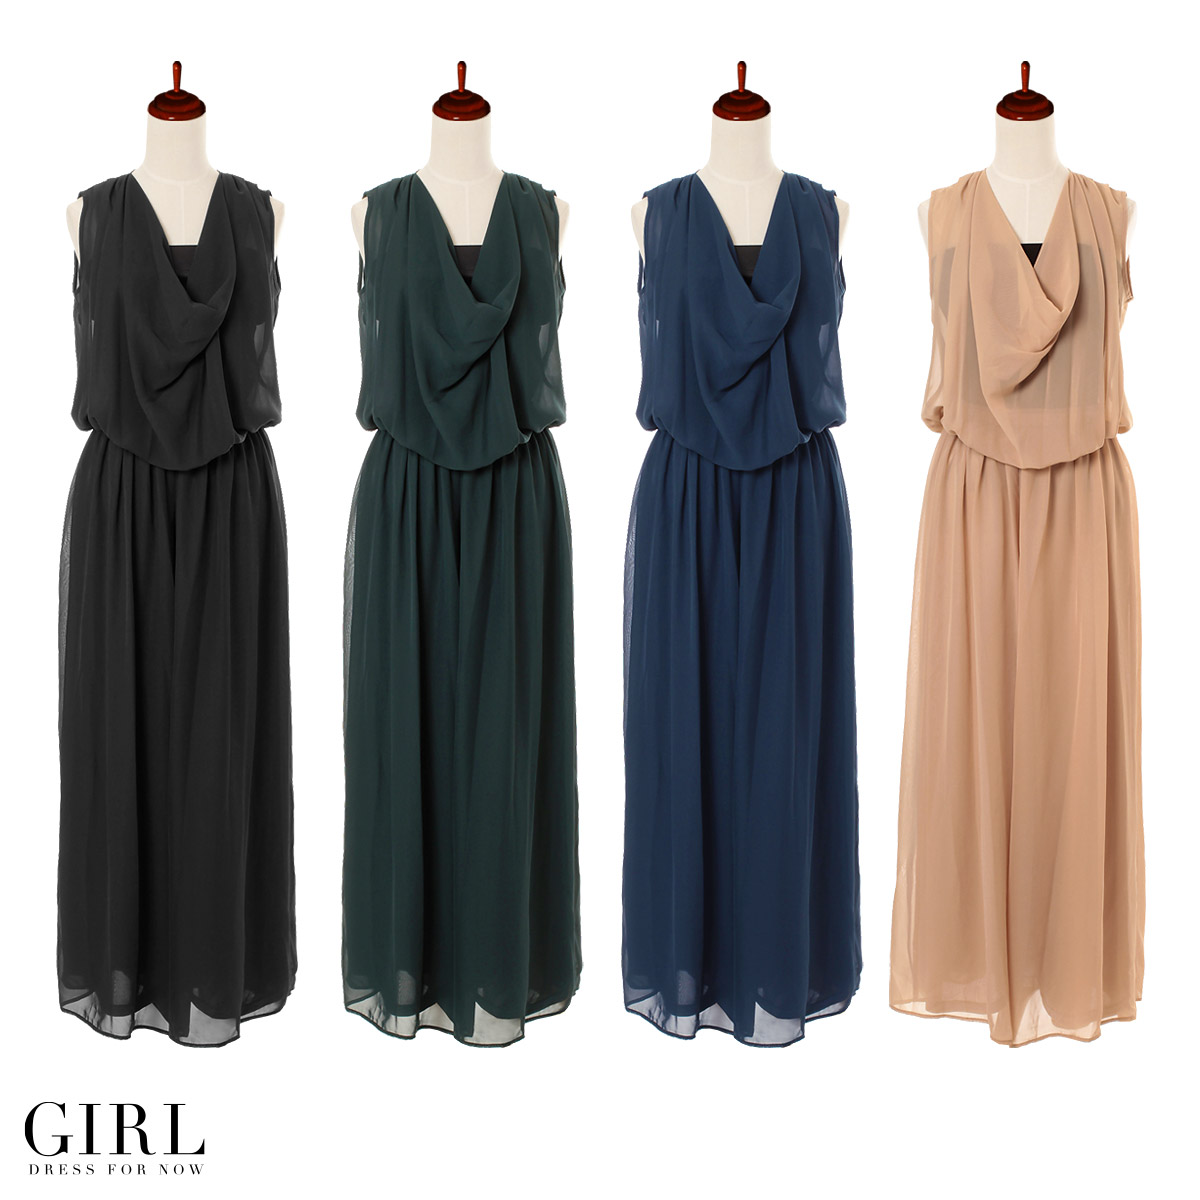 Free Shipping Sheath Body Cover 10 000 Yen Pants Dress All In One Combinaison Sleeveless Party Wedding Parties